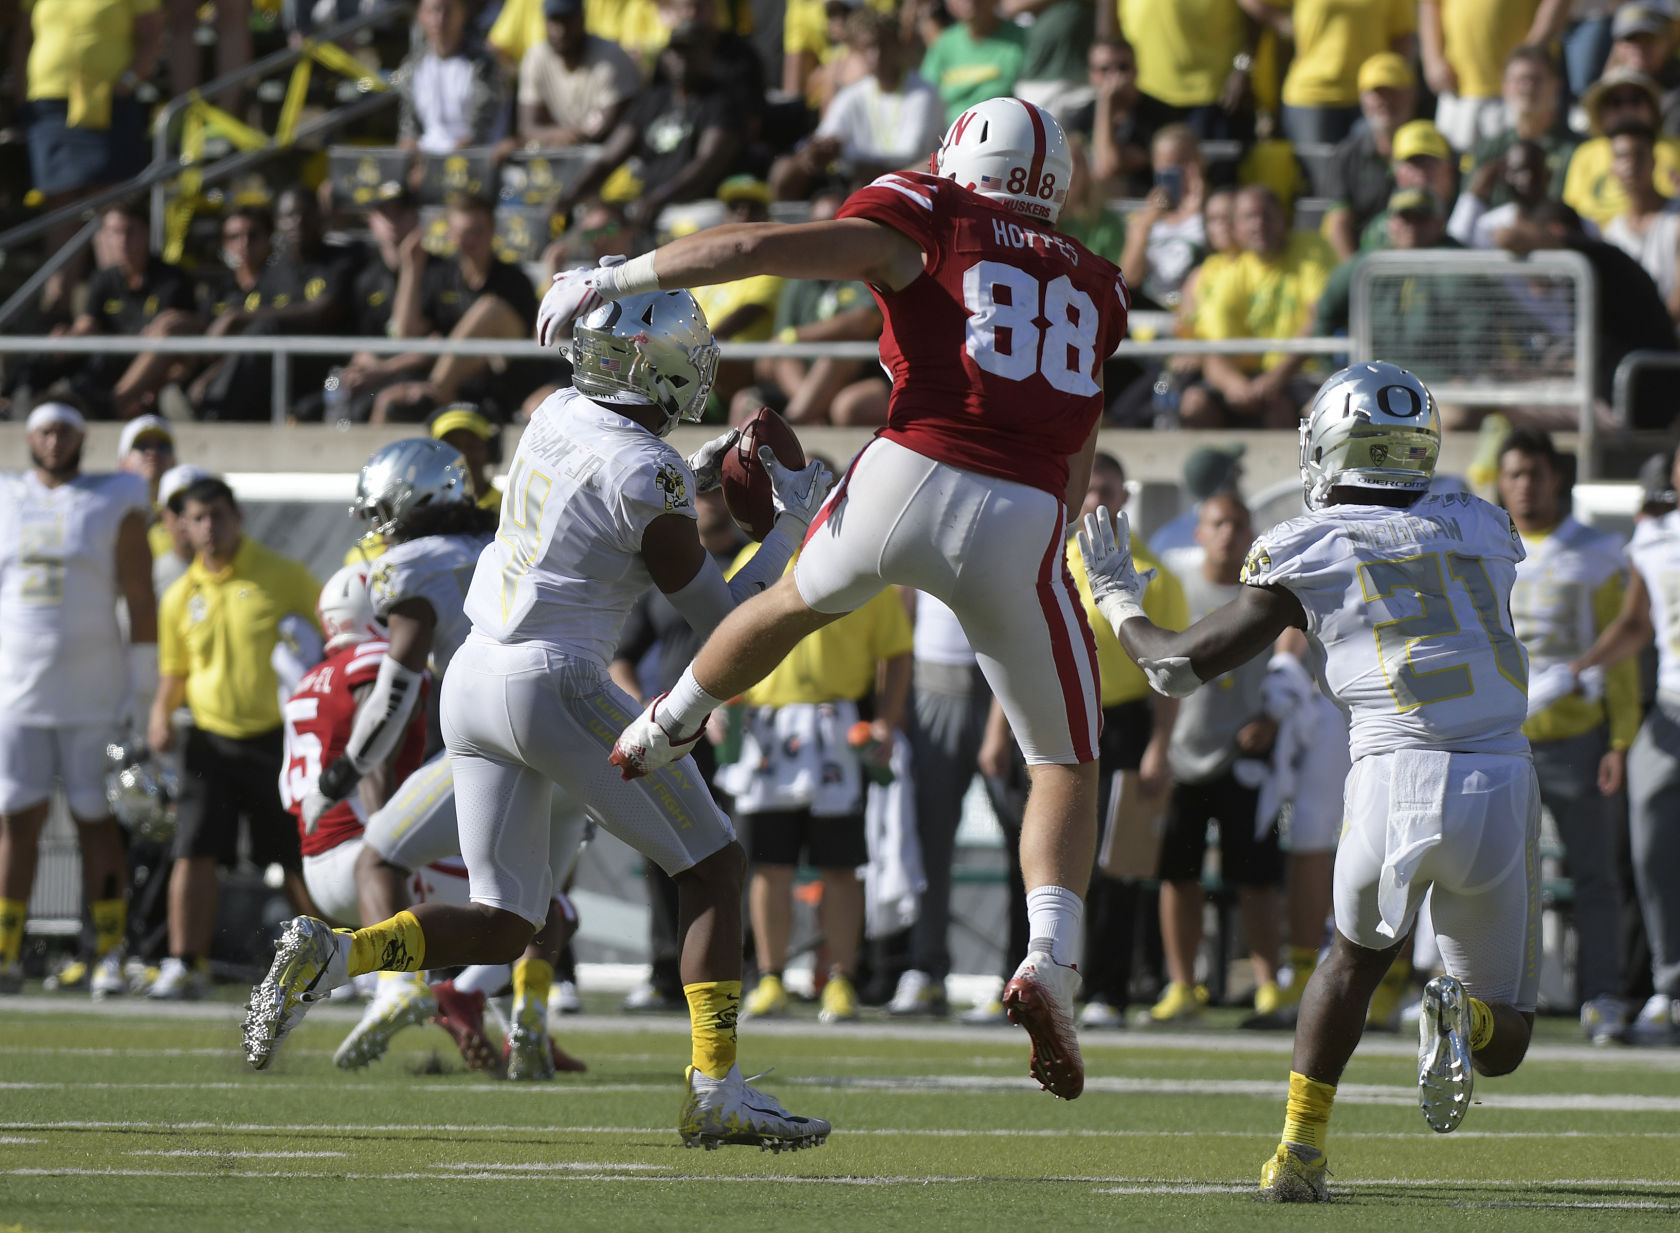 Young Oregon defense to challenge Huskers